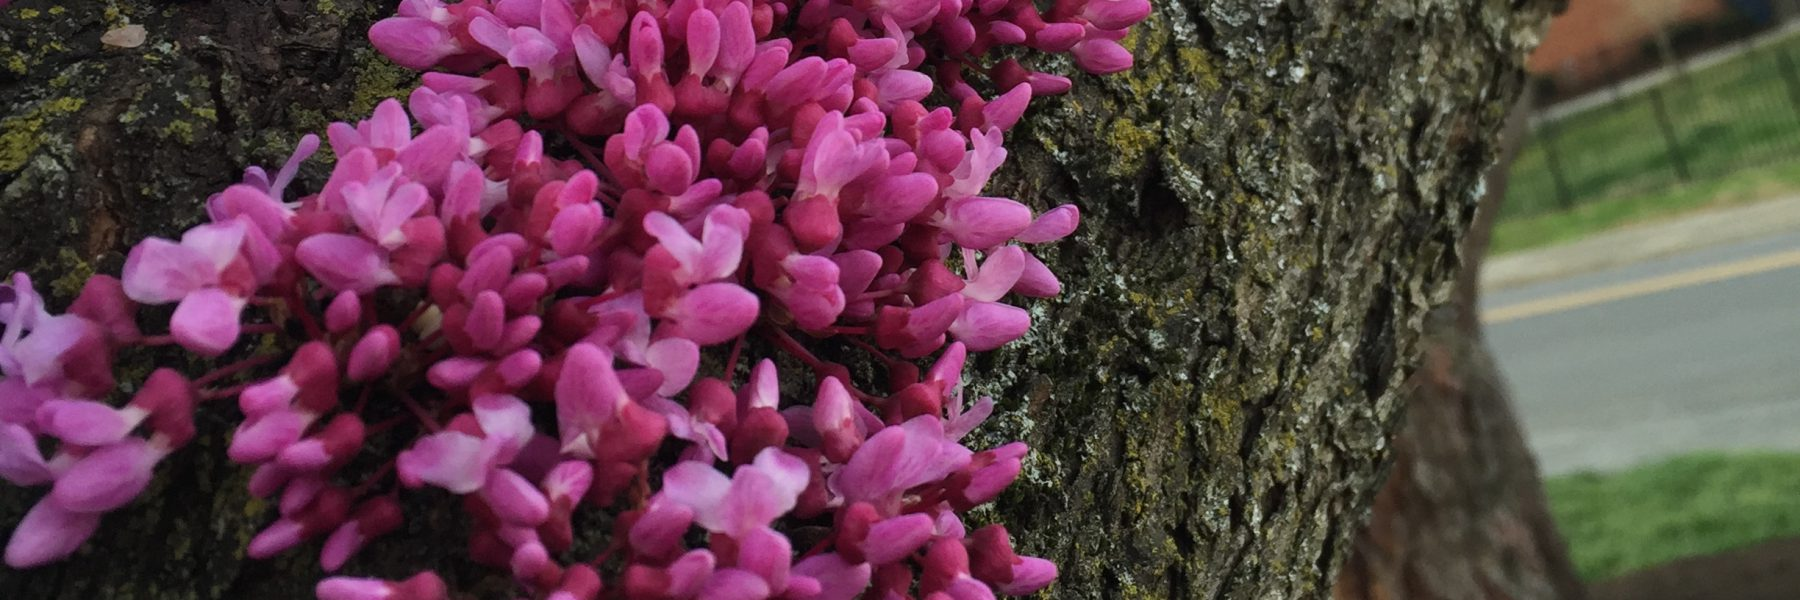 Flowers on a tree bark